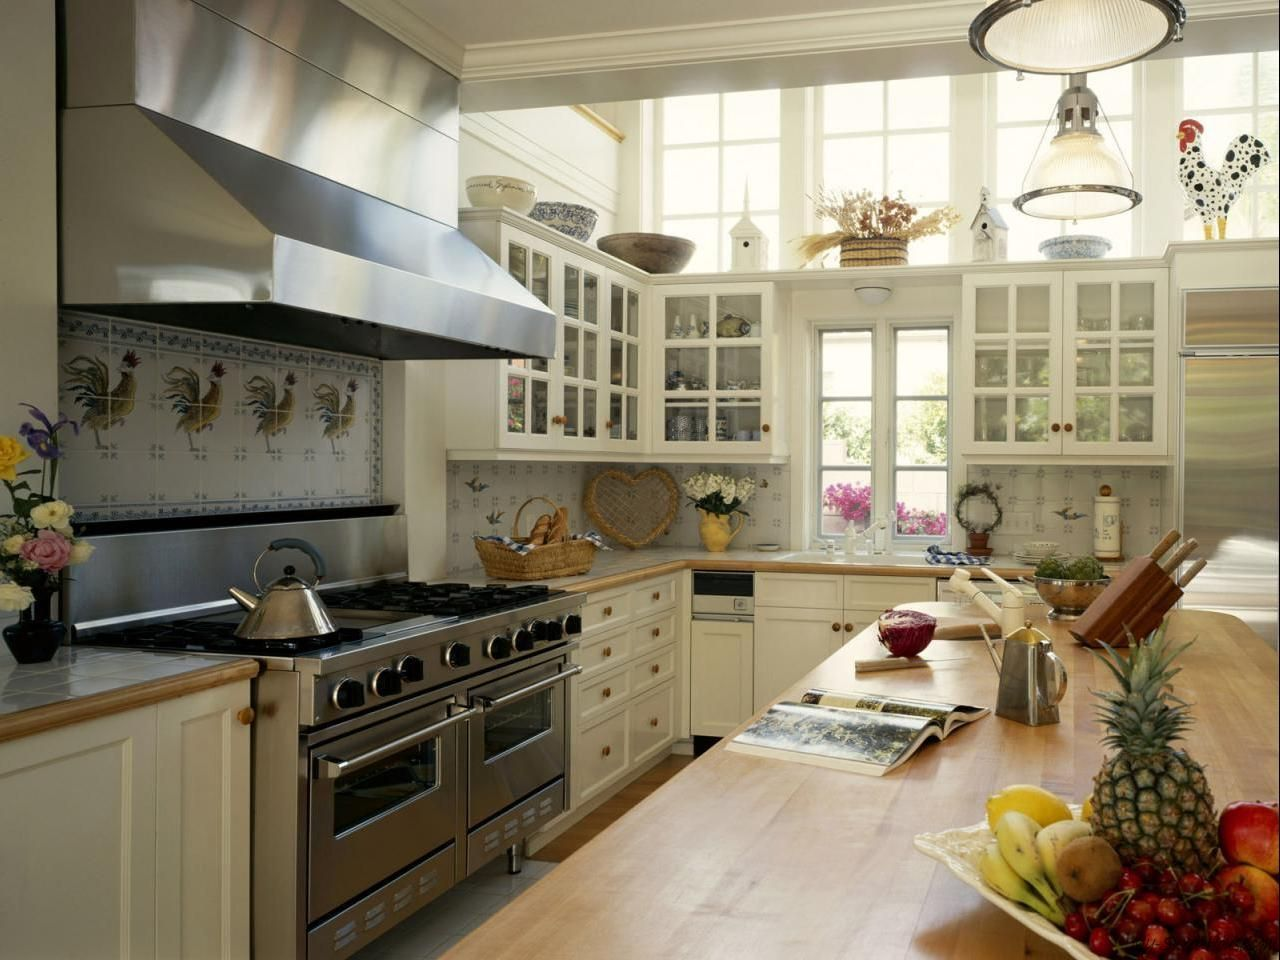 free-kitchen-design-idea-23